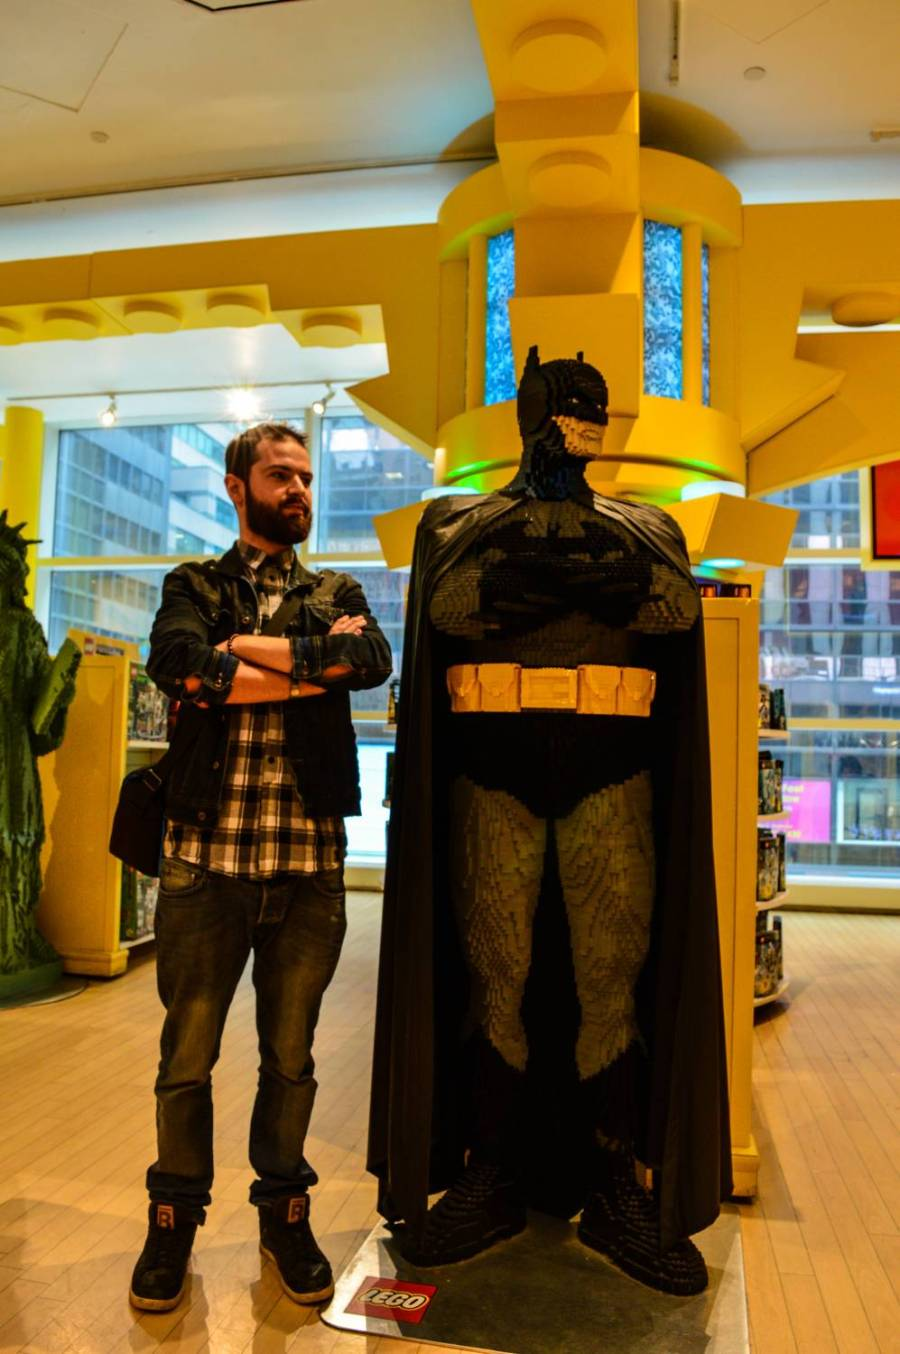 Séb taking a picture with his doppelganger at FAO Schwarz! - New York City, United States